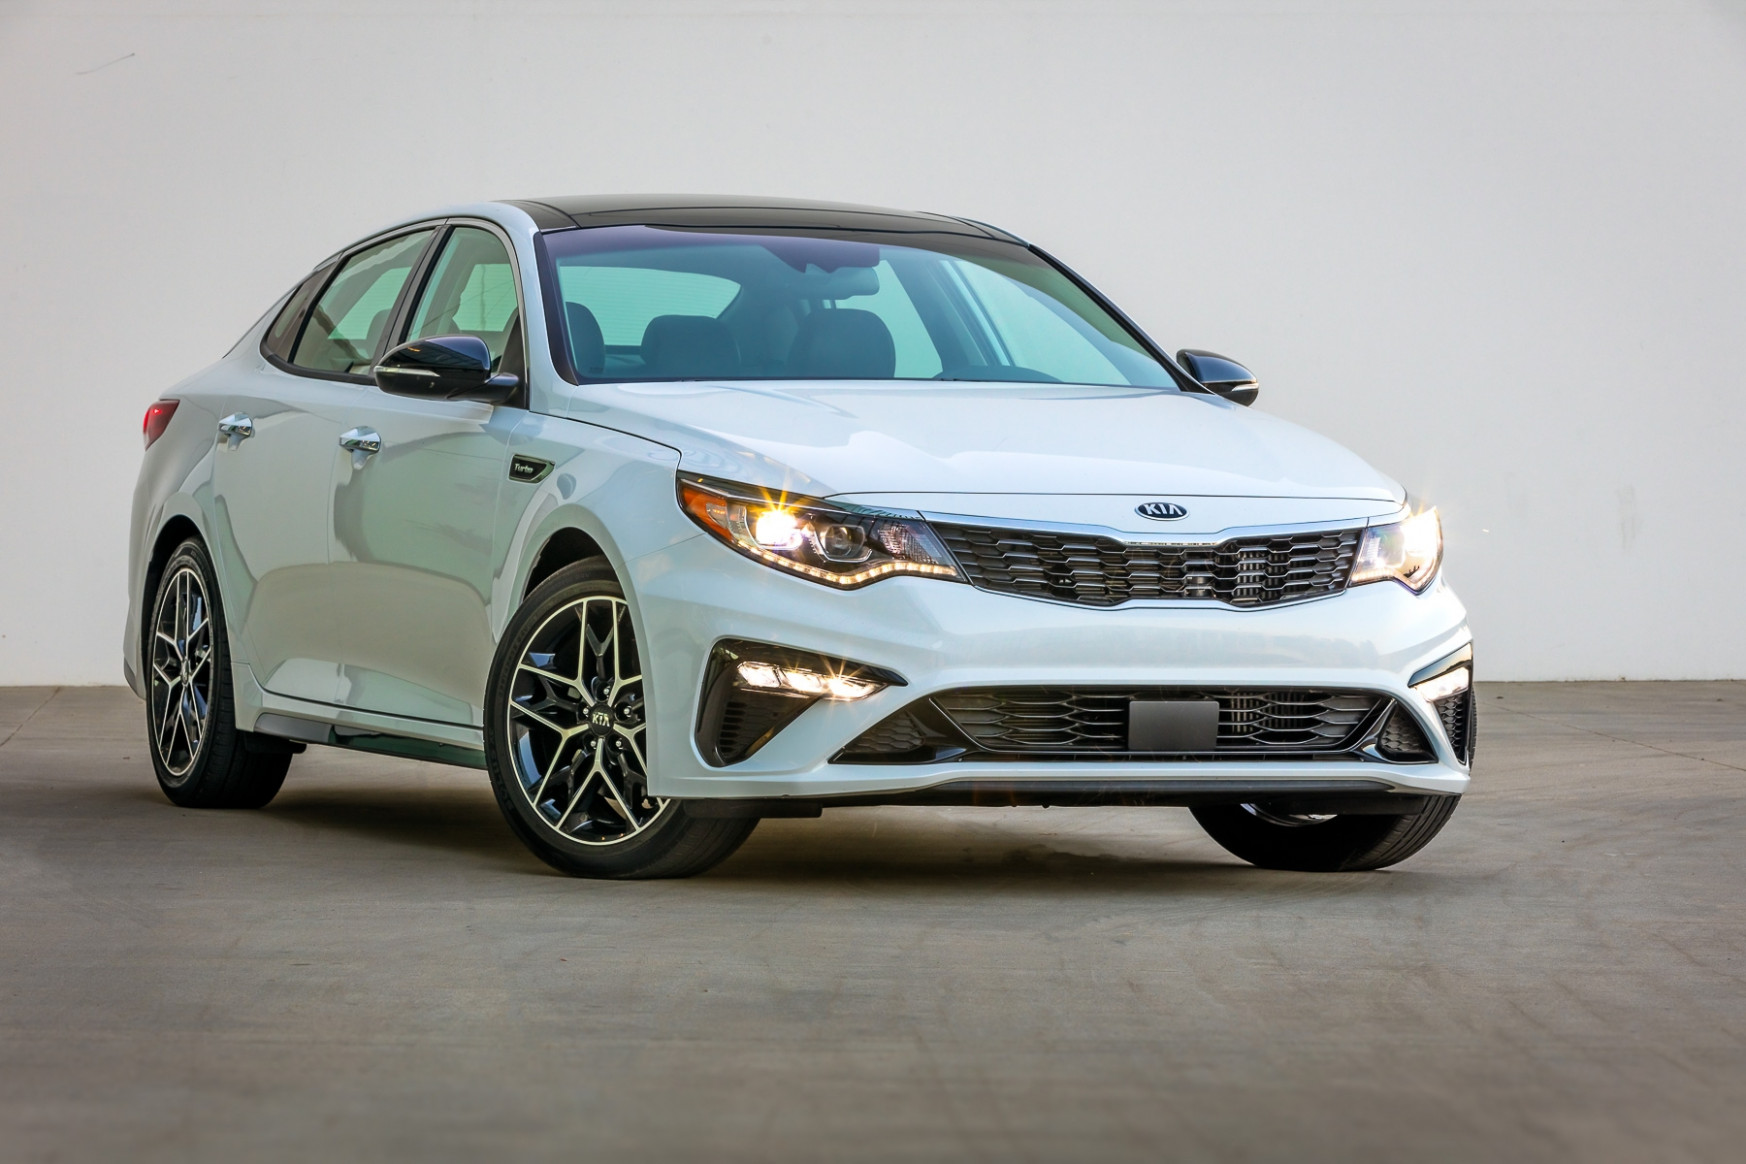 Kia Optima 10 Price In Qatar | Specs, Price, Interior, Release Date